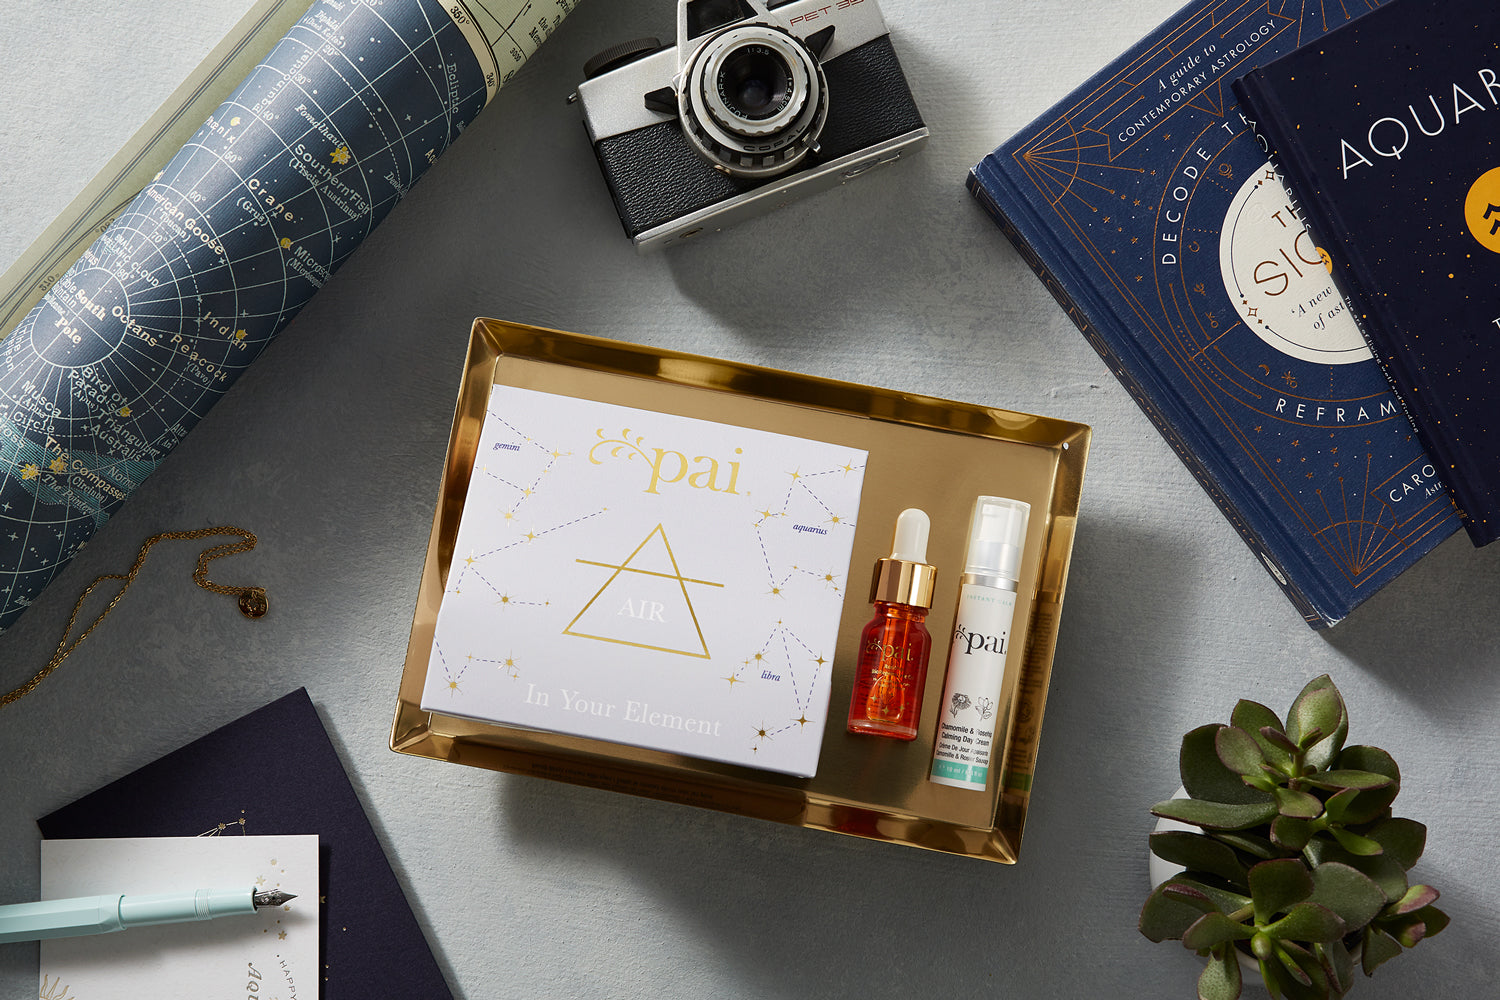 Air: In Your Element Gift Set